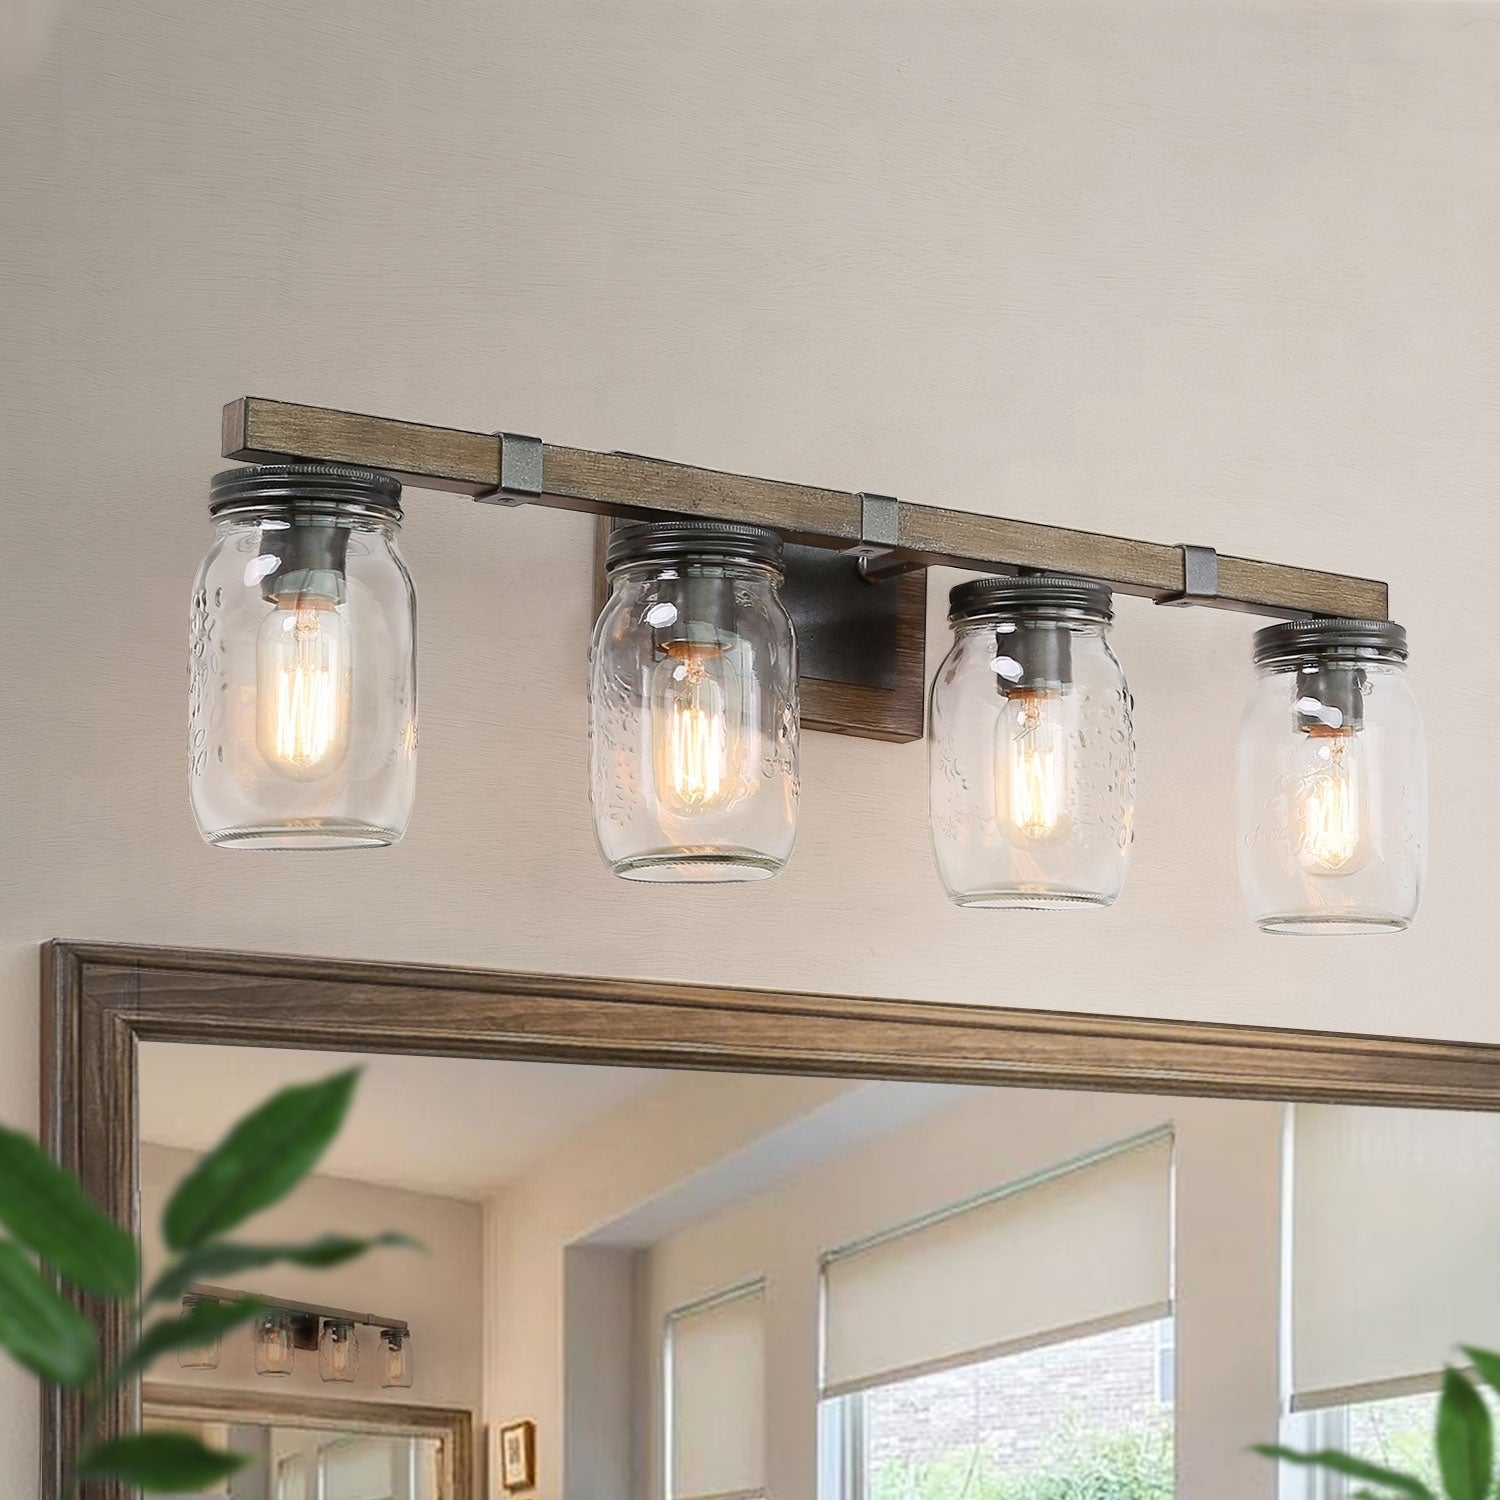 Farmhouse 4 Lights Bathroom Vanity Lighting Wall Sconce W29 Xh9 Xe6 Overstock 29959673